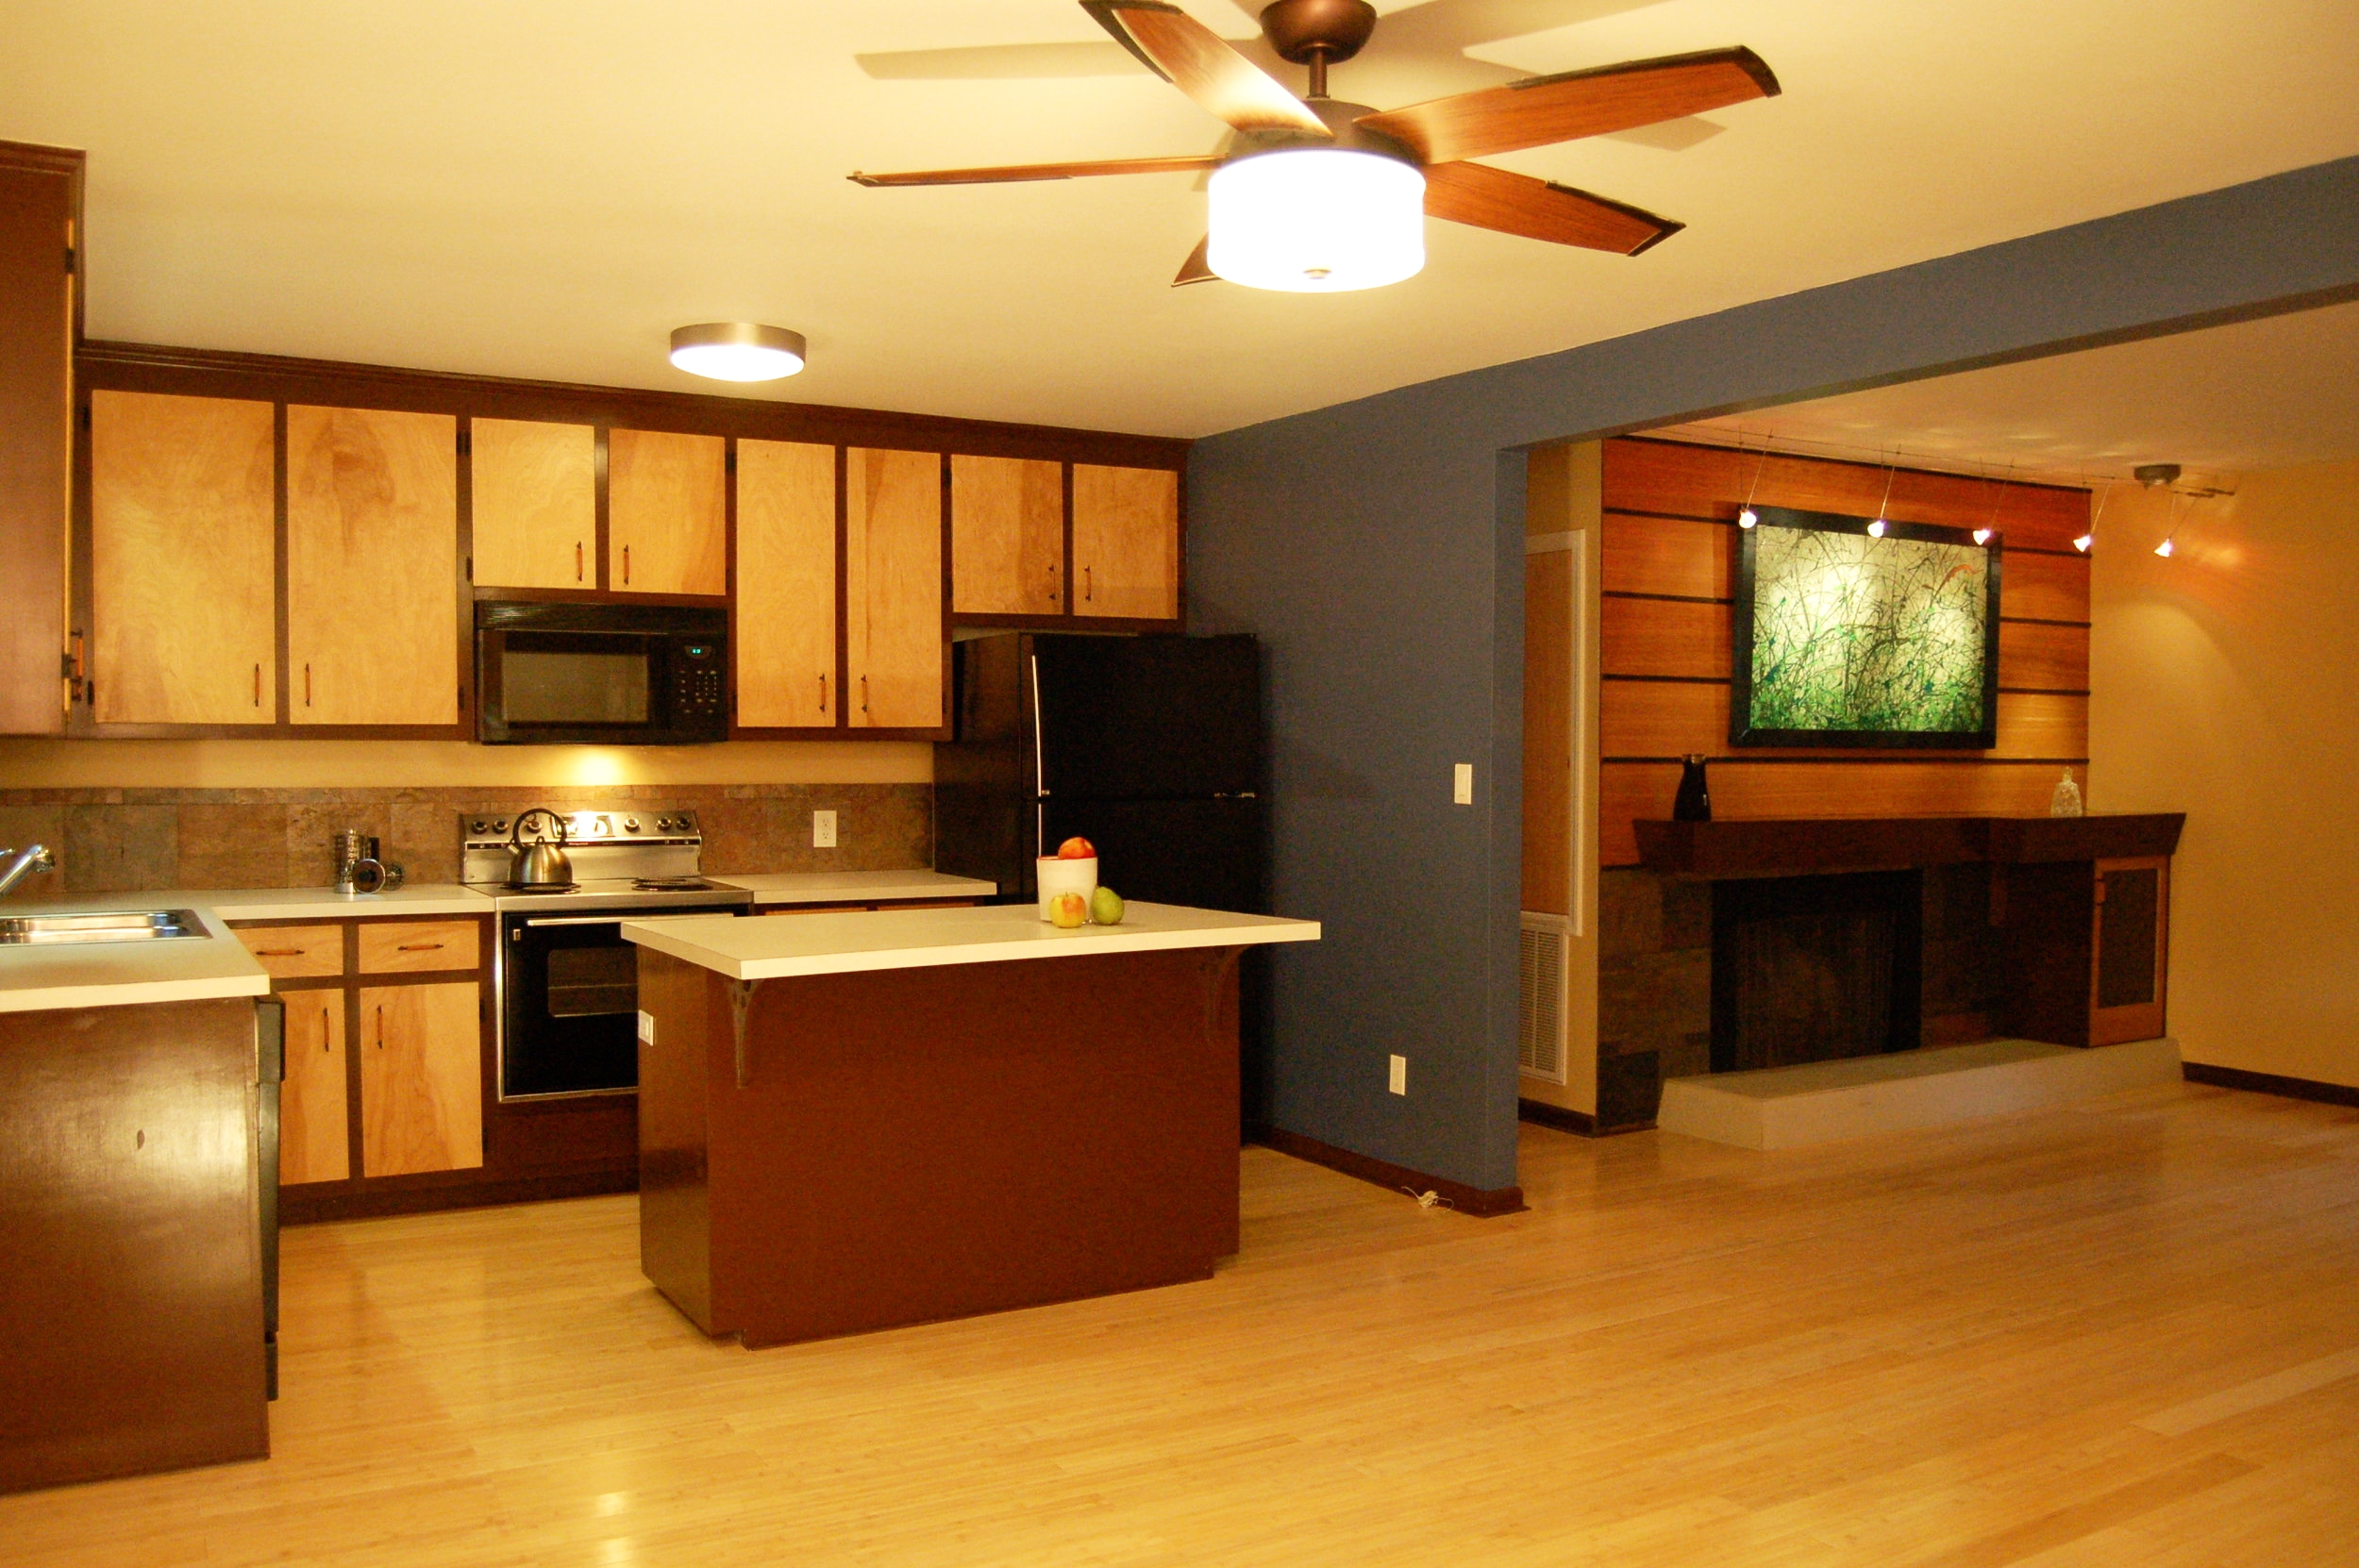 Kitchen-Living Room-1.JPG